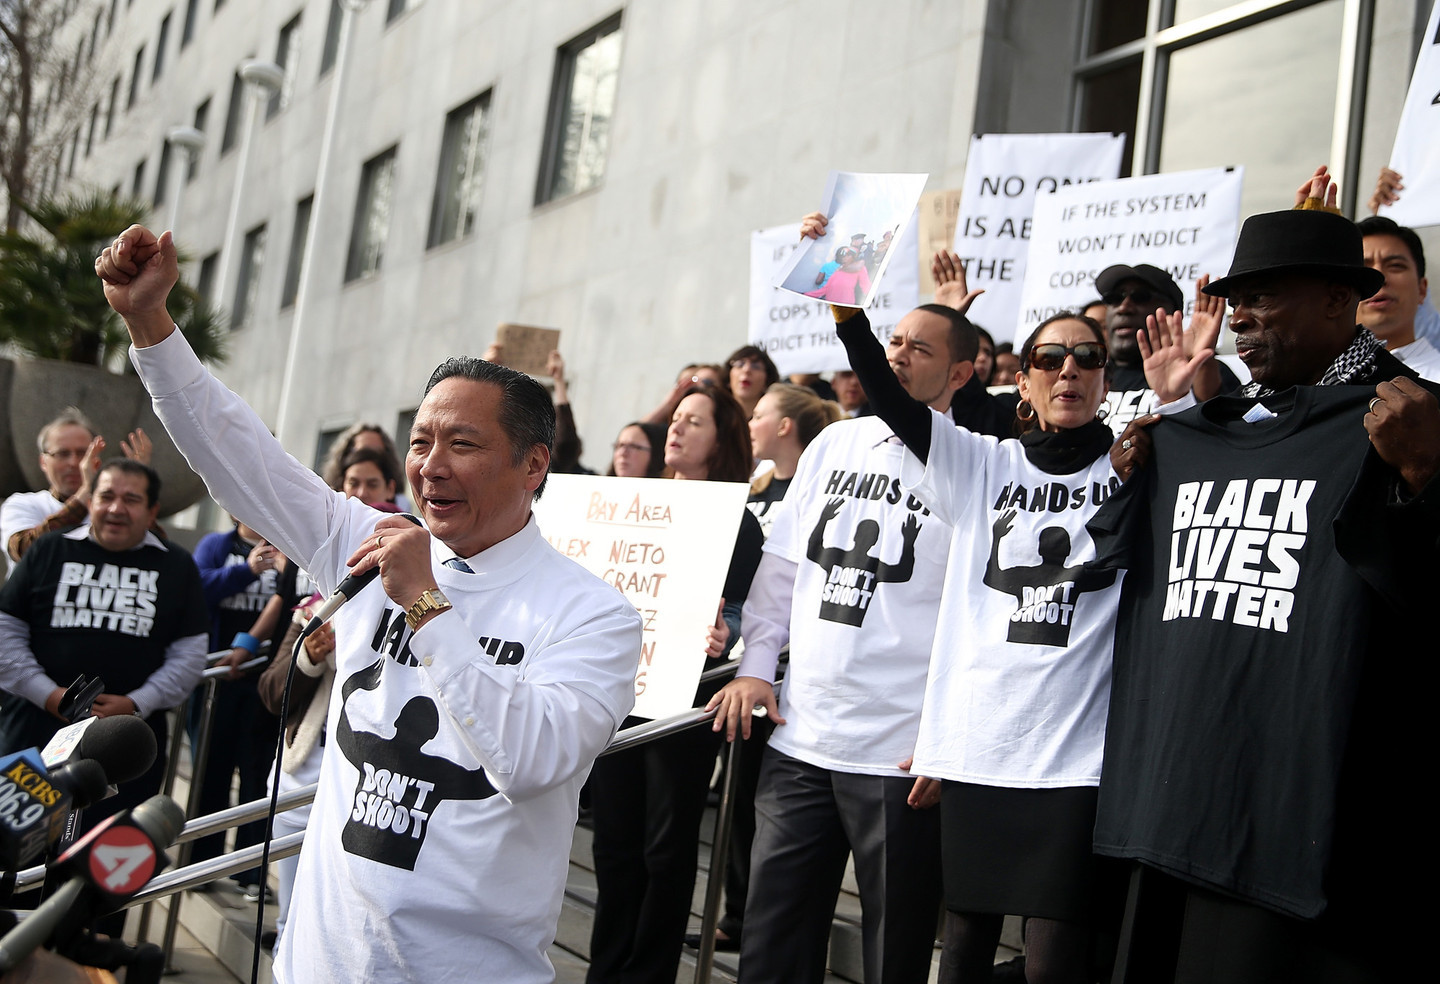 San Francisco Public Defender Jeff Adachi speaks in front of the city's Hall of Justice during a demonstration on Dec. 18. Public defenders in Alameda, Contra Costa, Santa Clara and Solano counties staged similar actions today at their county courthouses.